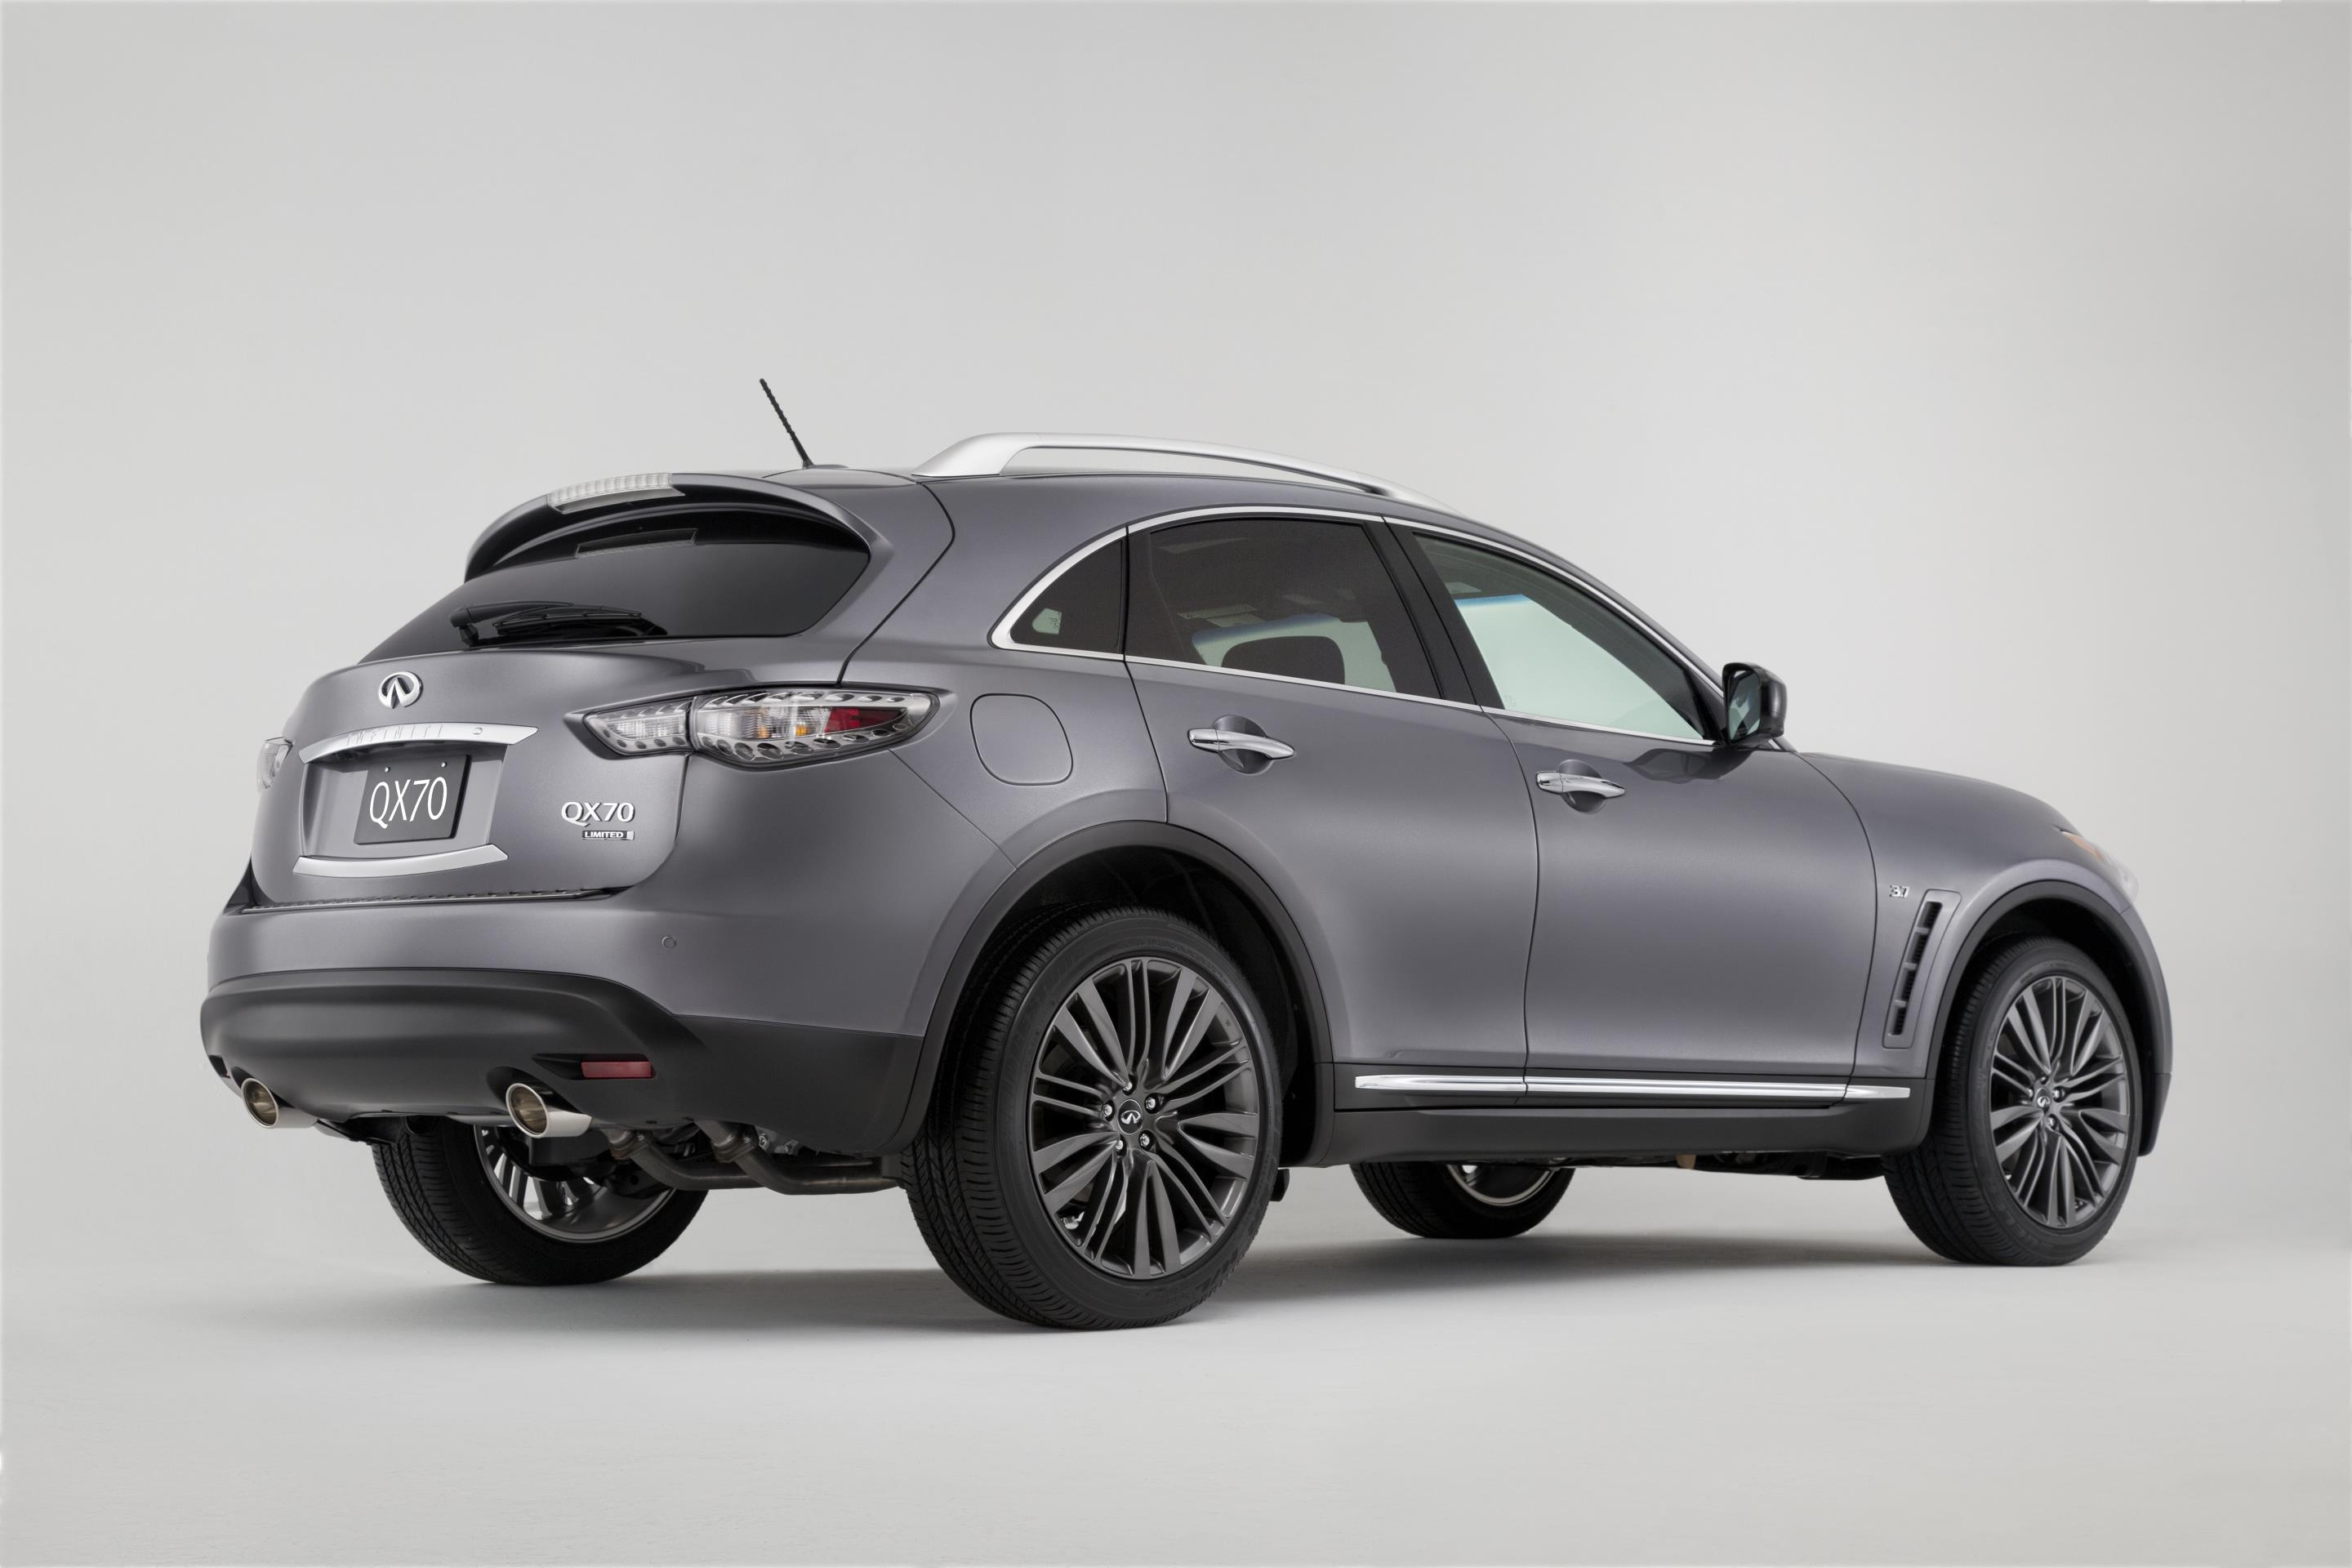 2017 infiniti qx70 limited debuts at the new york auto show autoevolution. Black Bedroom Furniture Sets. Home Design Ideas